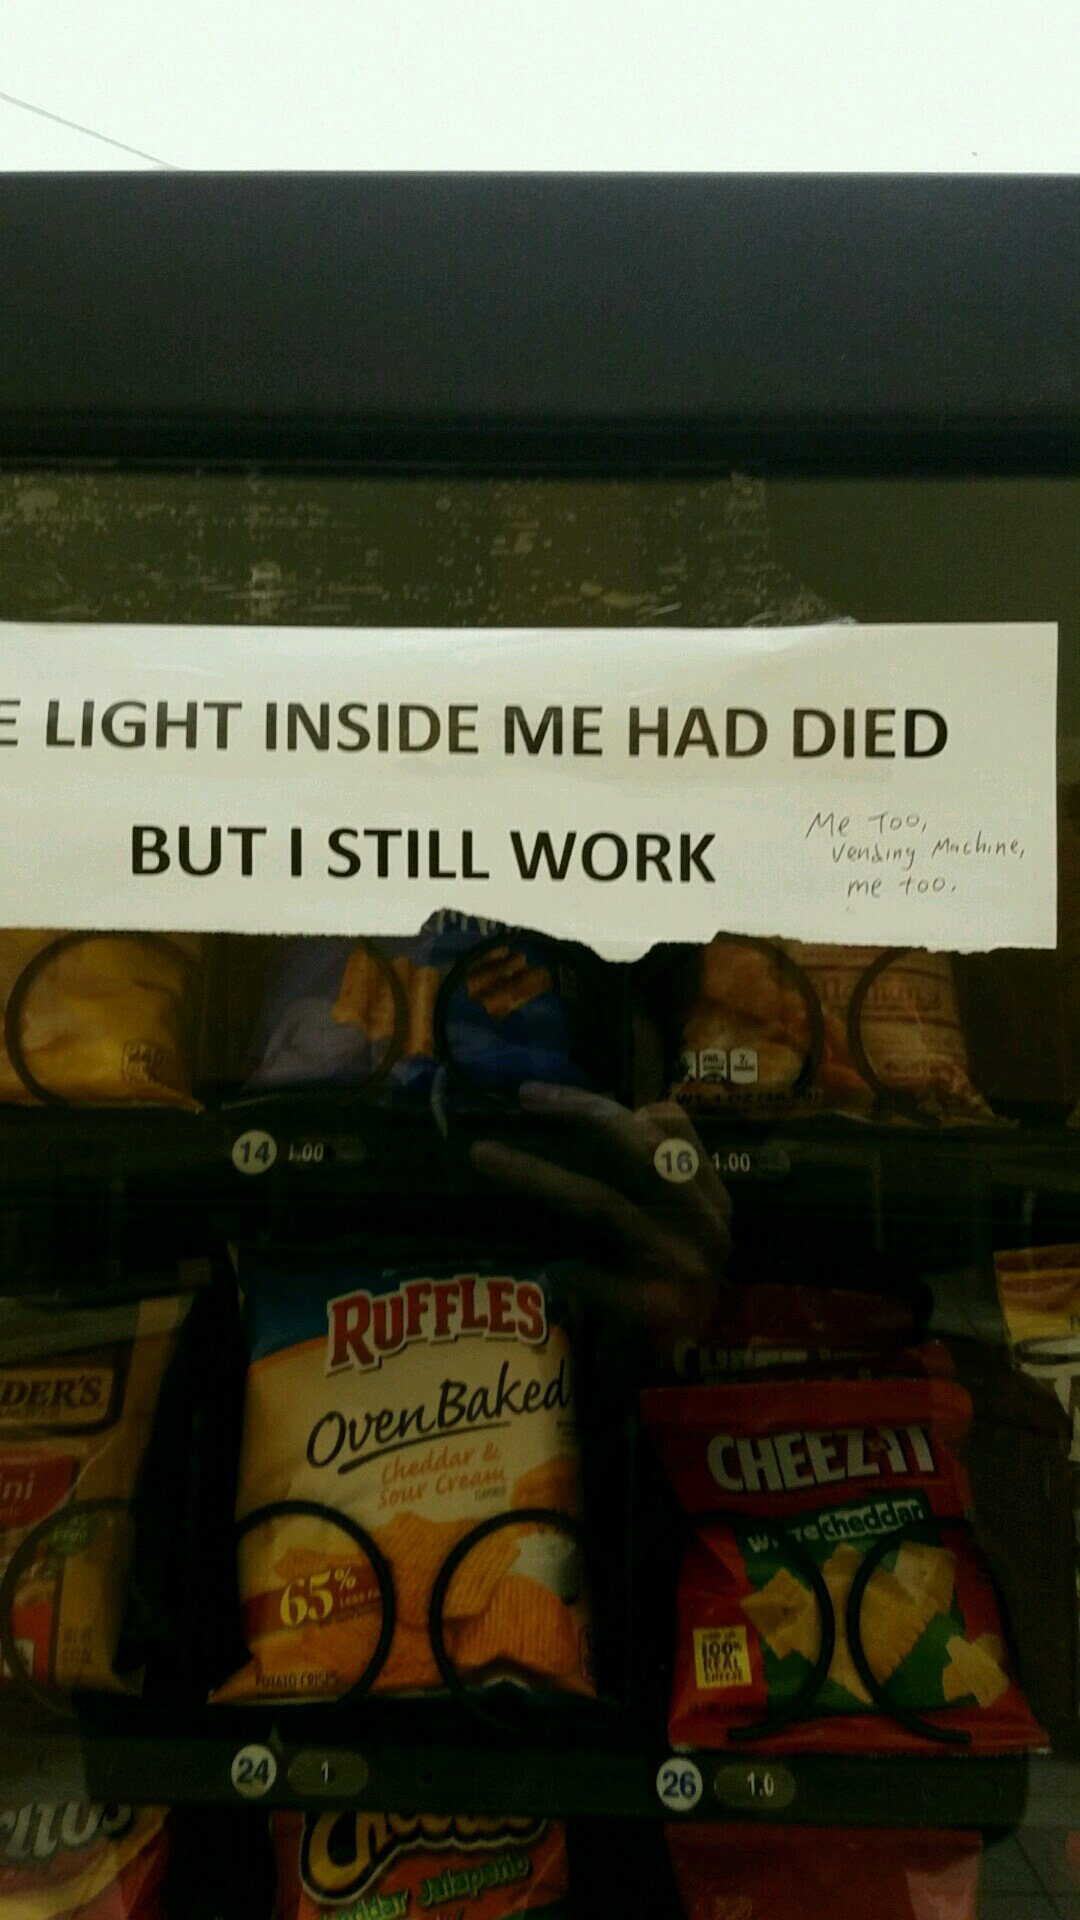 Me too vending machine, me too